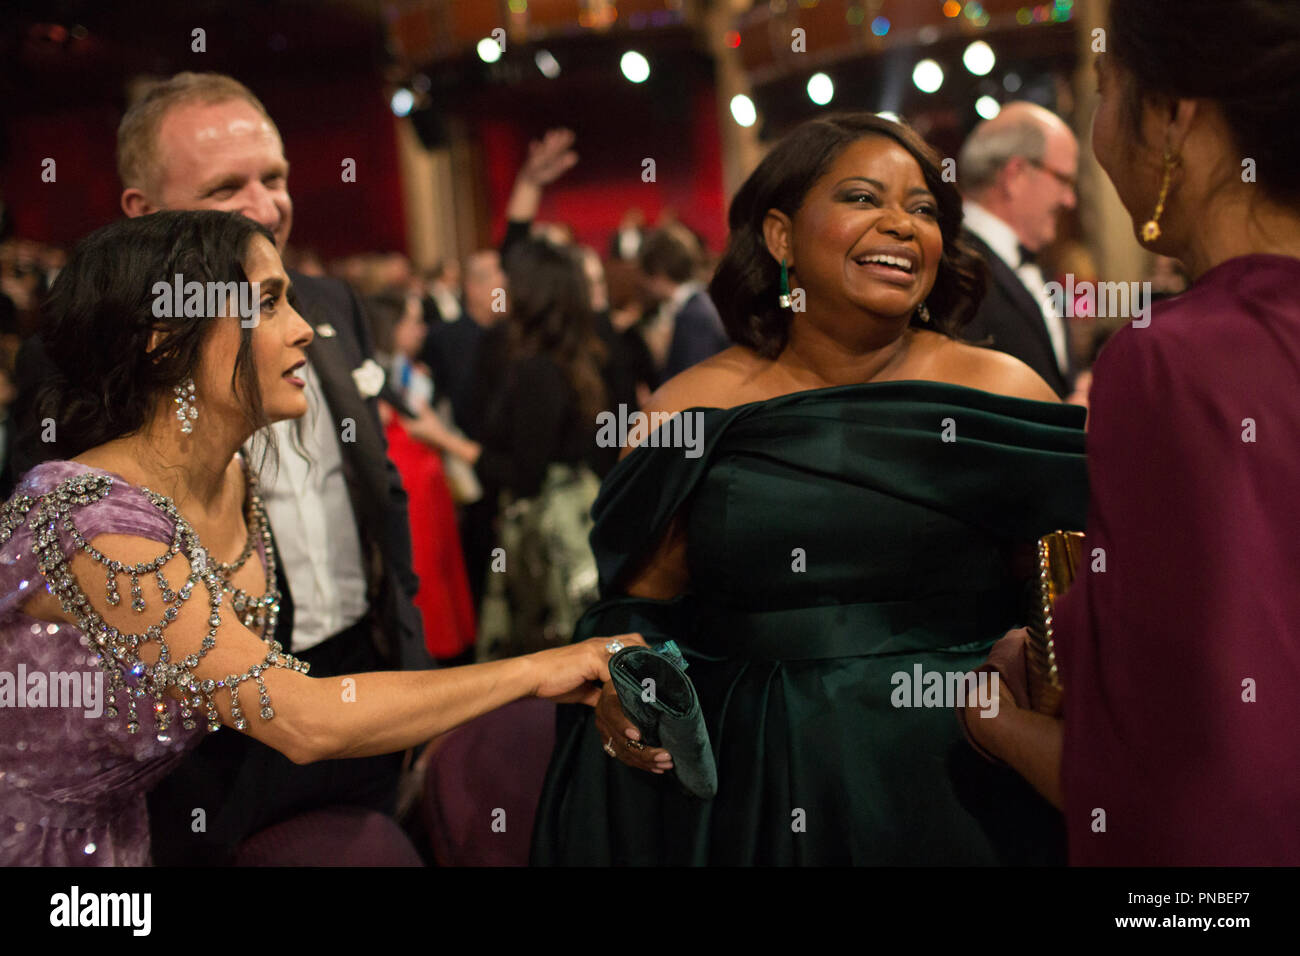 Salma Hayek talks with Oscar®-nominee Octavia Spencer during the live ABC Telecast of the 90th Oscars® at the Dolby® Theatre in Hollywood, CA on Sunday, March 4, 2018.  File Reference # 33546_552PLX  For Editorial Use Only -  All Rights Reserved - Stock Image